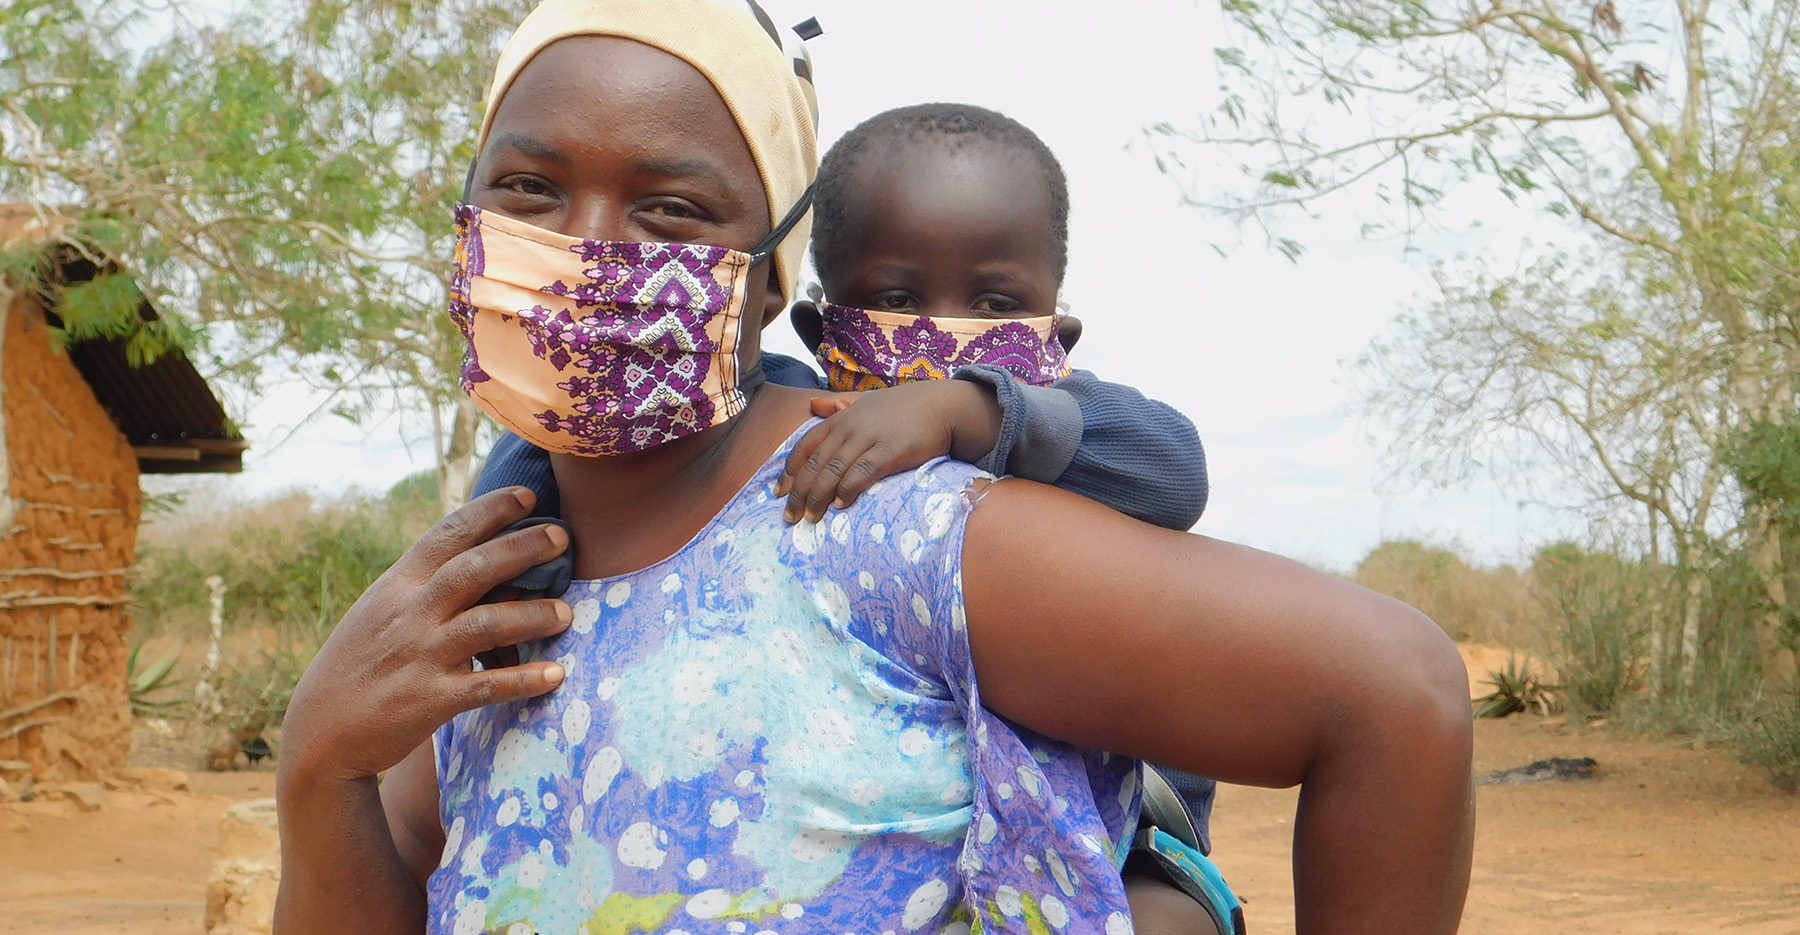 A mother and child in Kenya wear masks for COVID